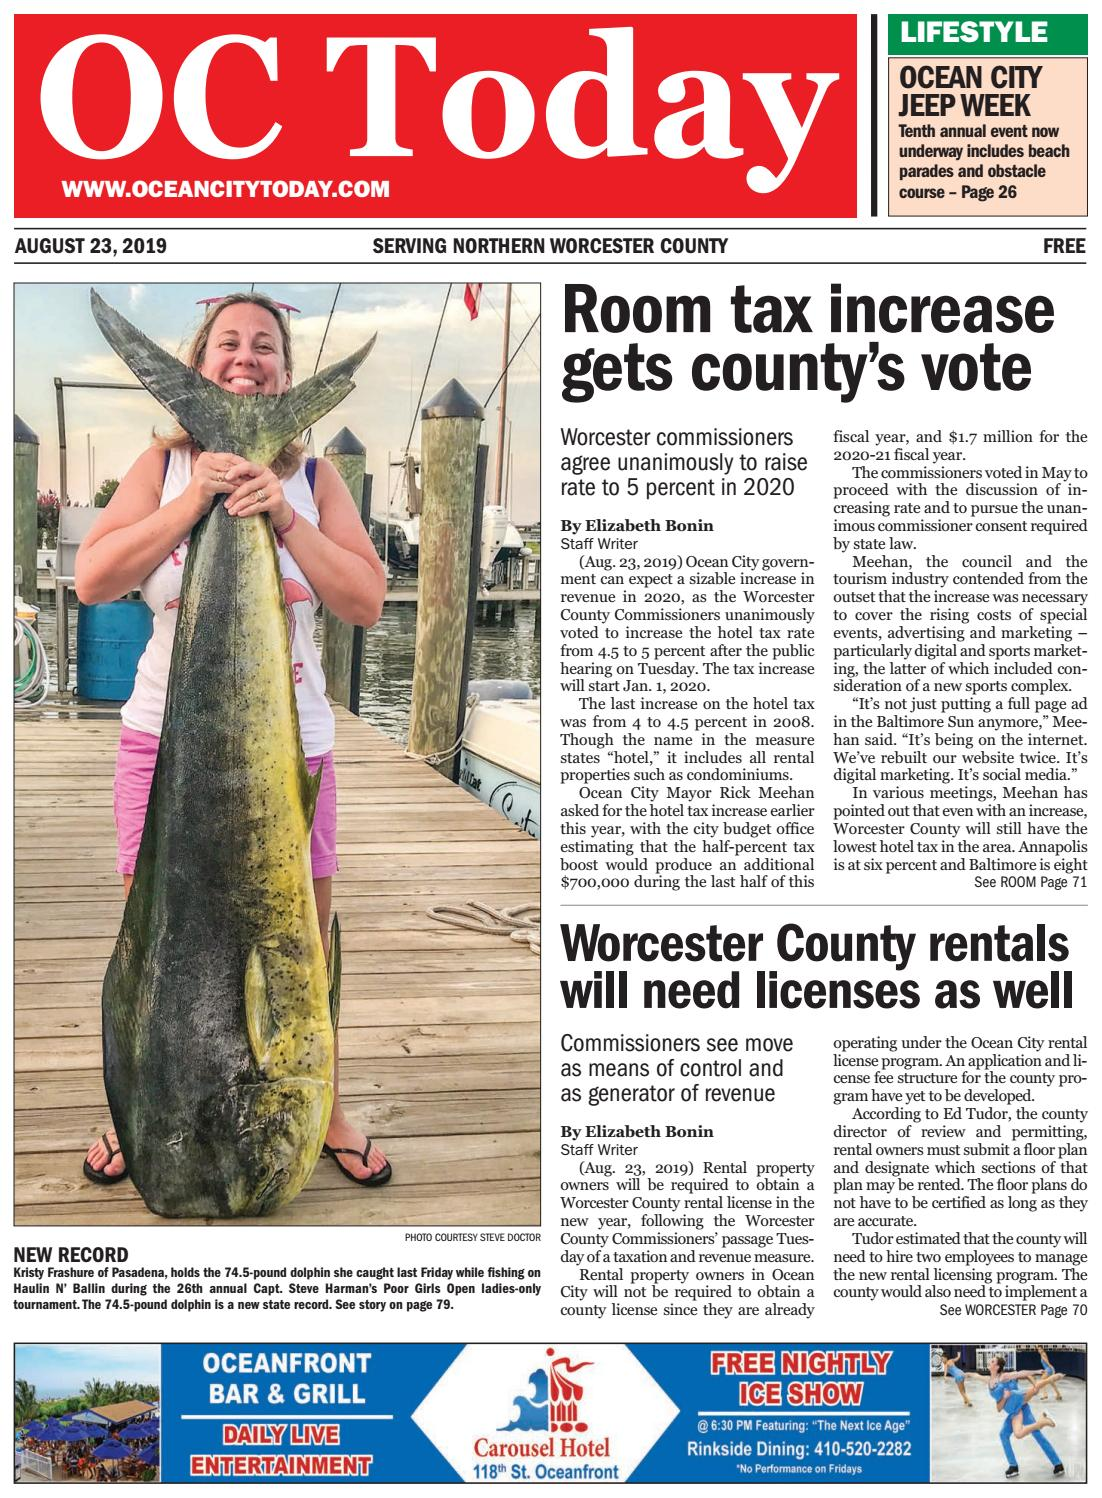 8/23/19 Ocean City Today by ocean city today - issuu